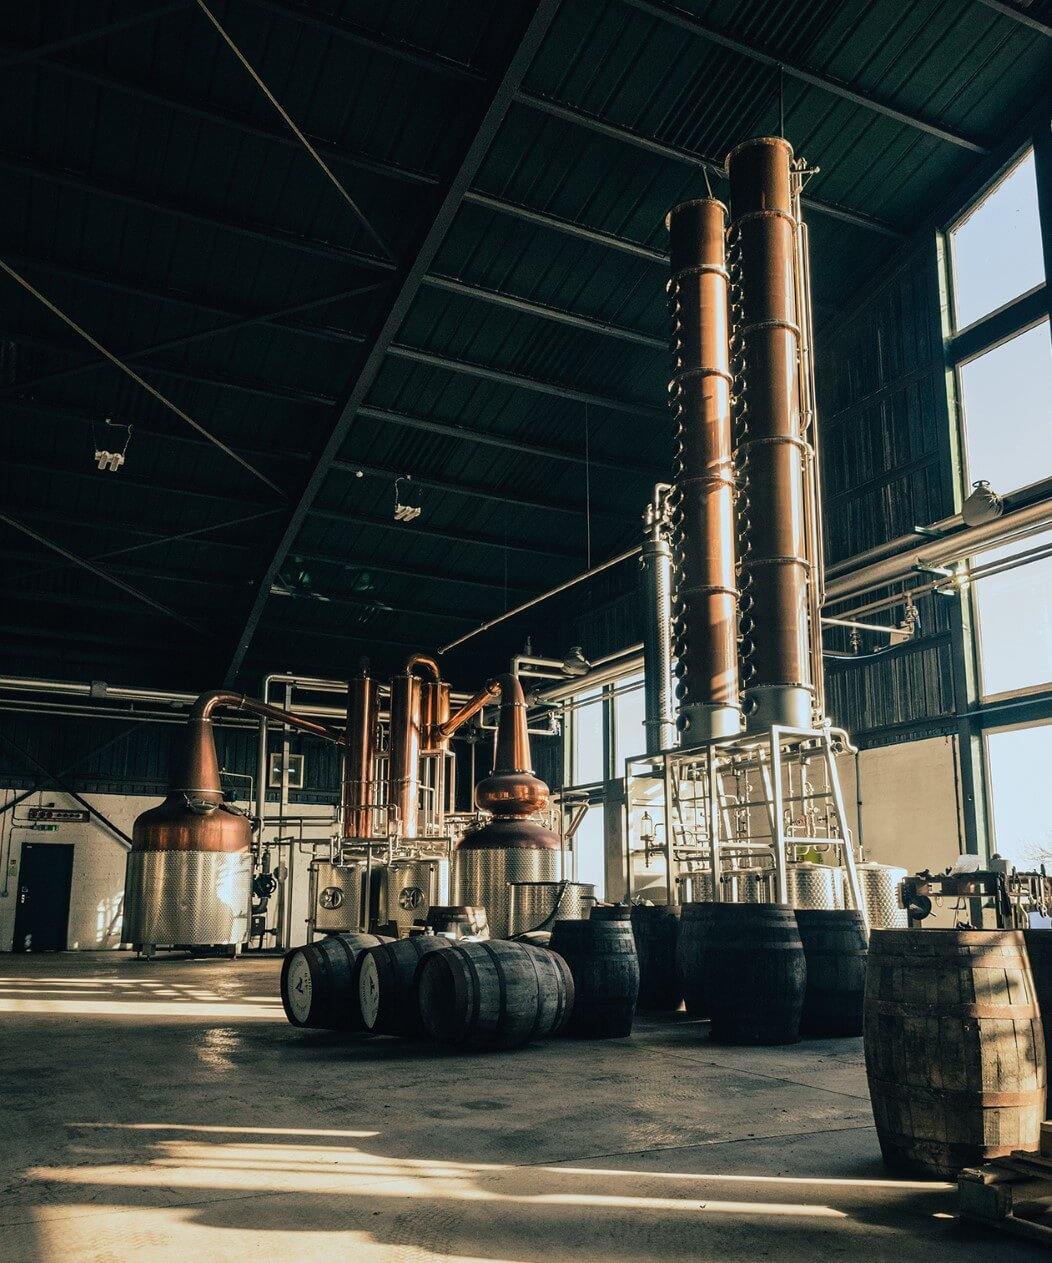 The still house at Arbikie Distillery, before the recent expansion. Photo by Christopher Coates.